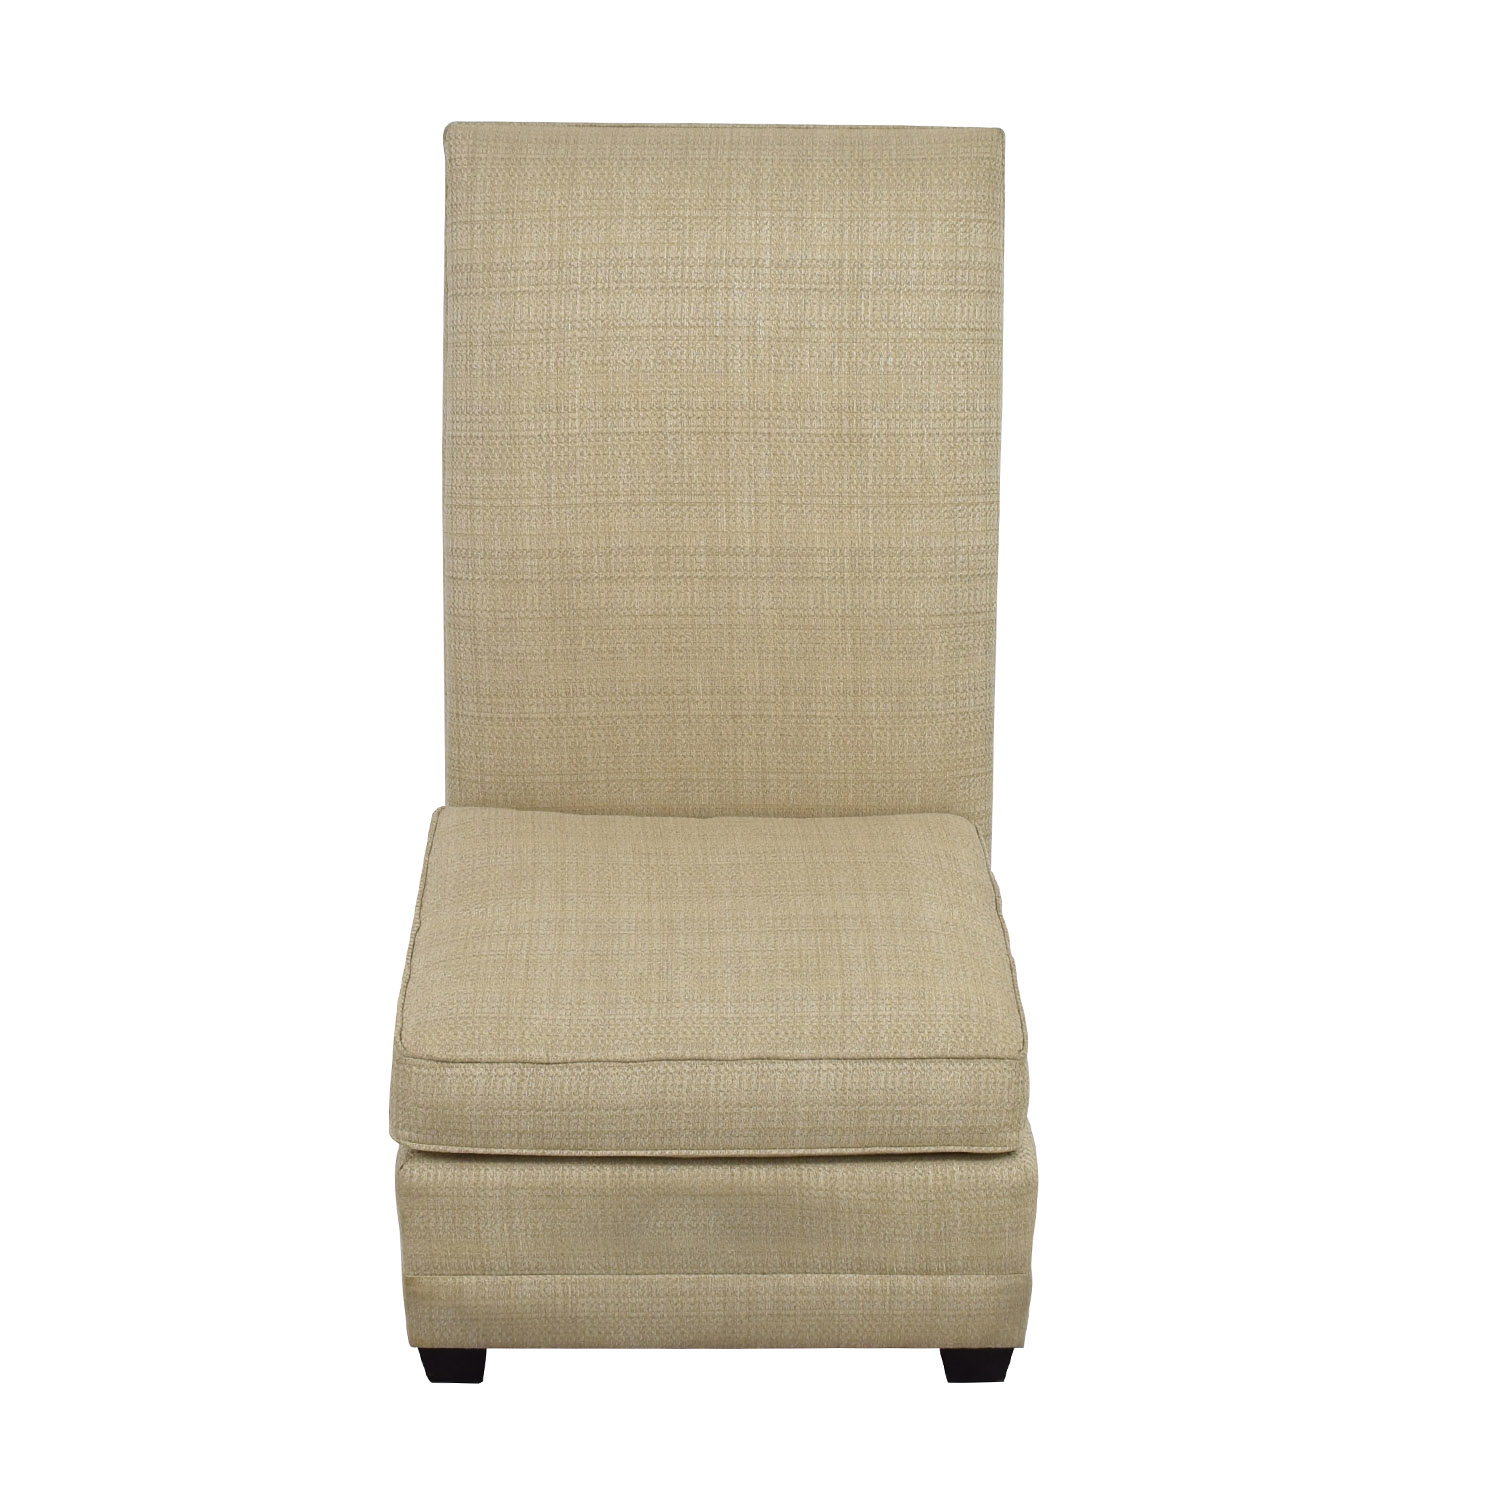 buy Bernhardt Beaumont Cream Accent Chair Bernhardt Accent Chairs